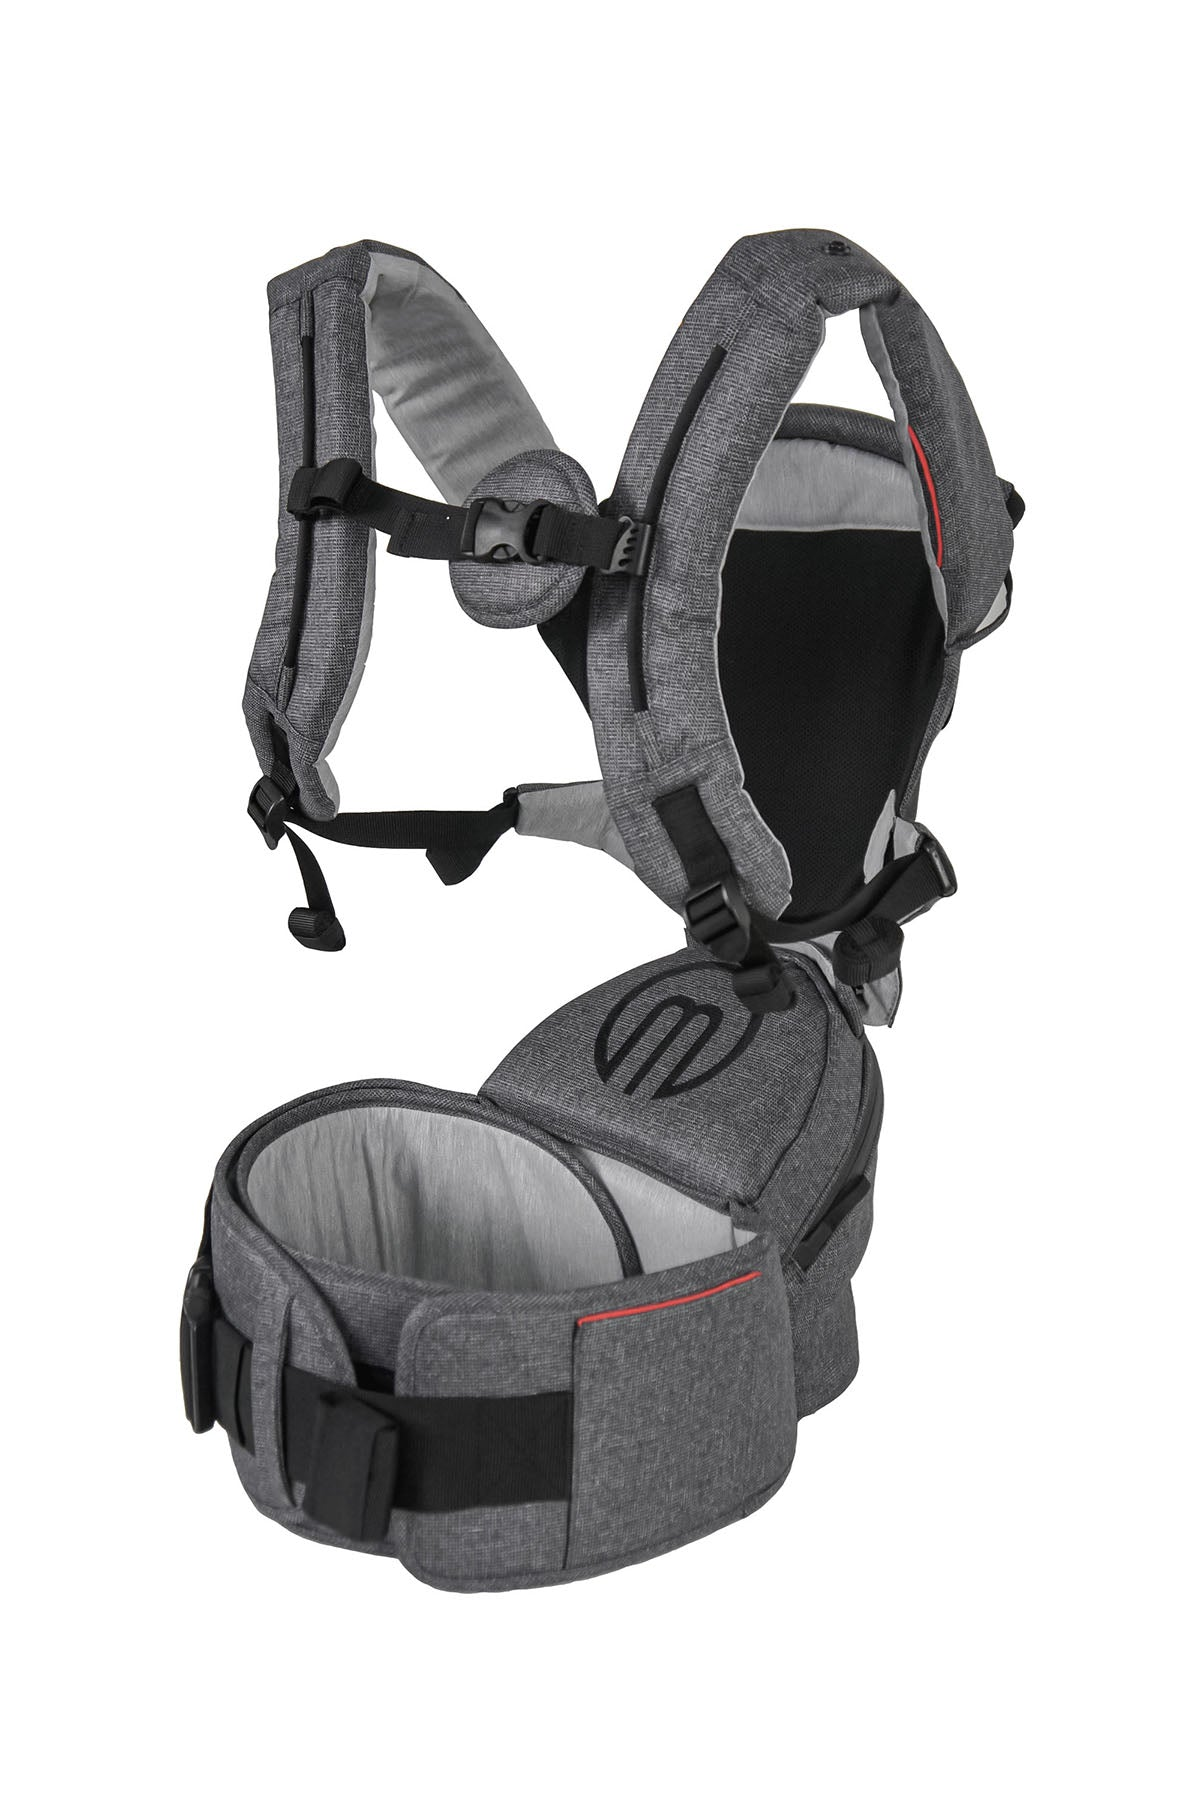 HIPSTER™ SMART 3D Baby Carrier back 2